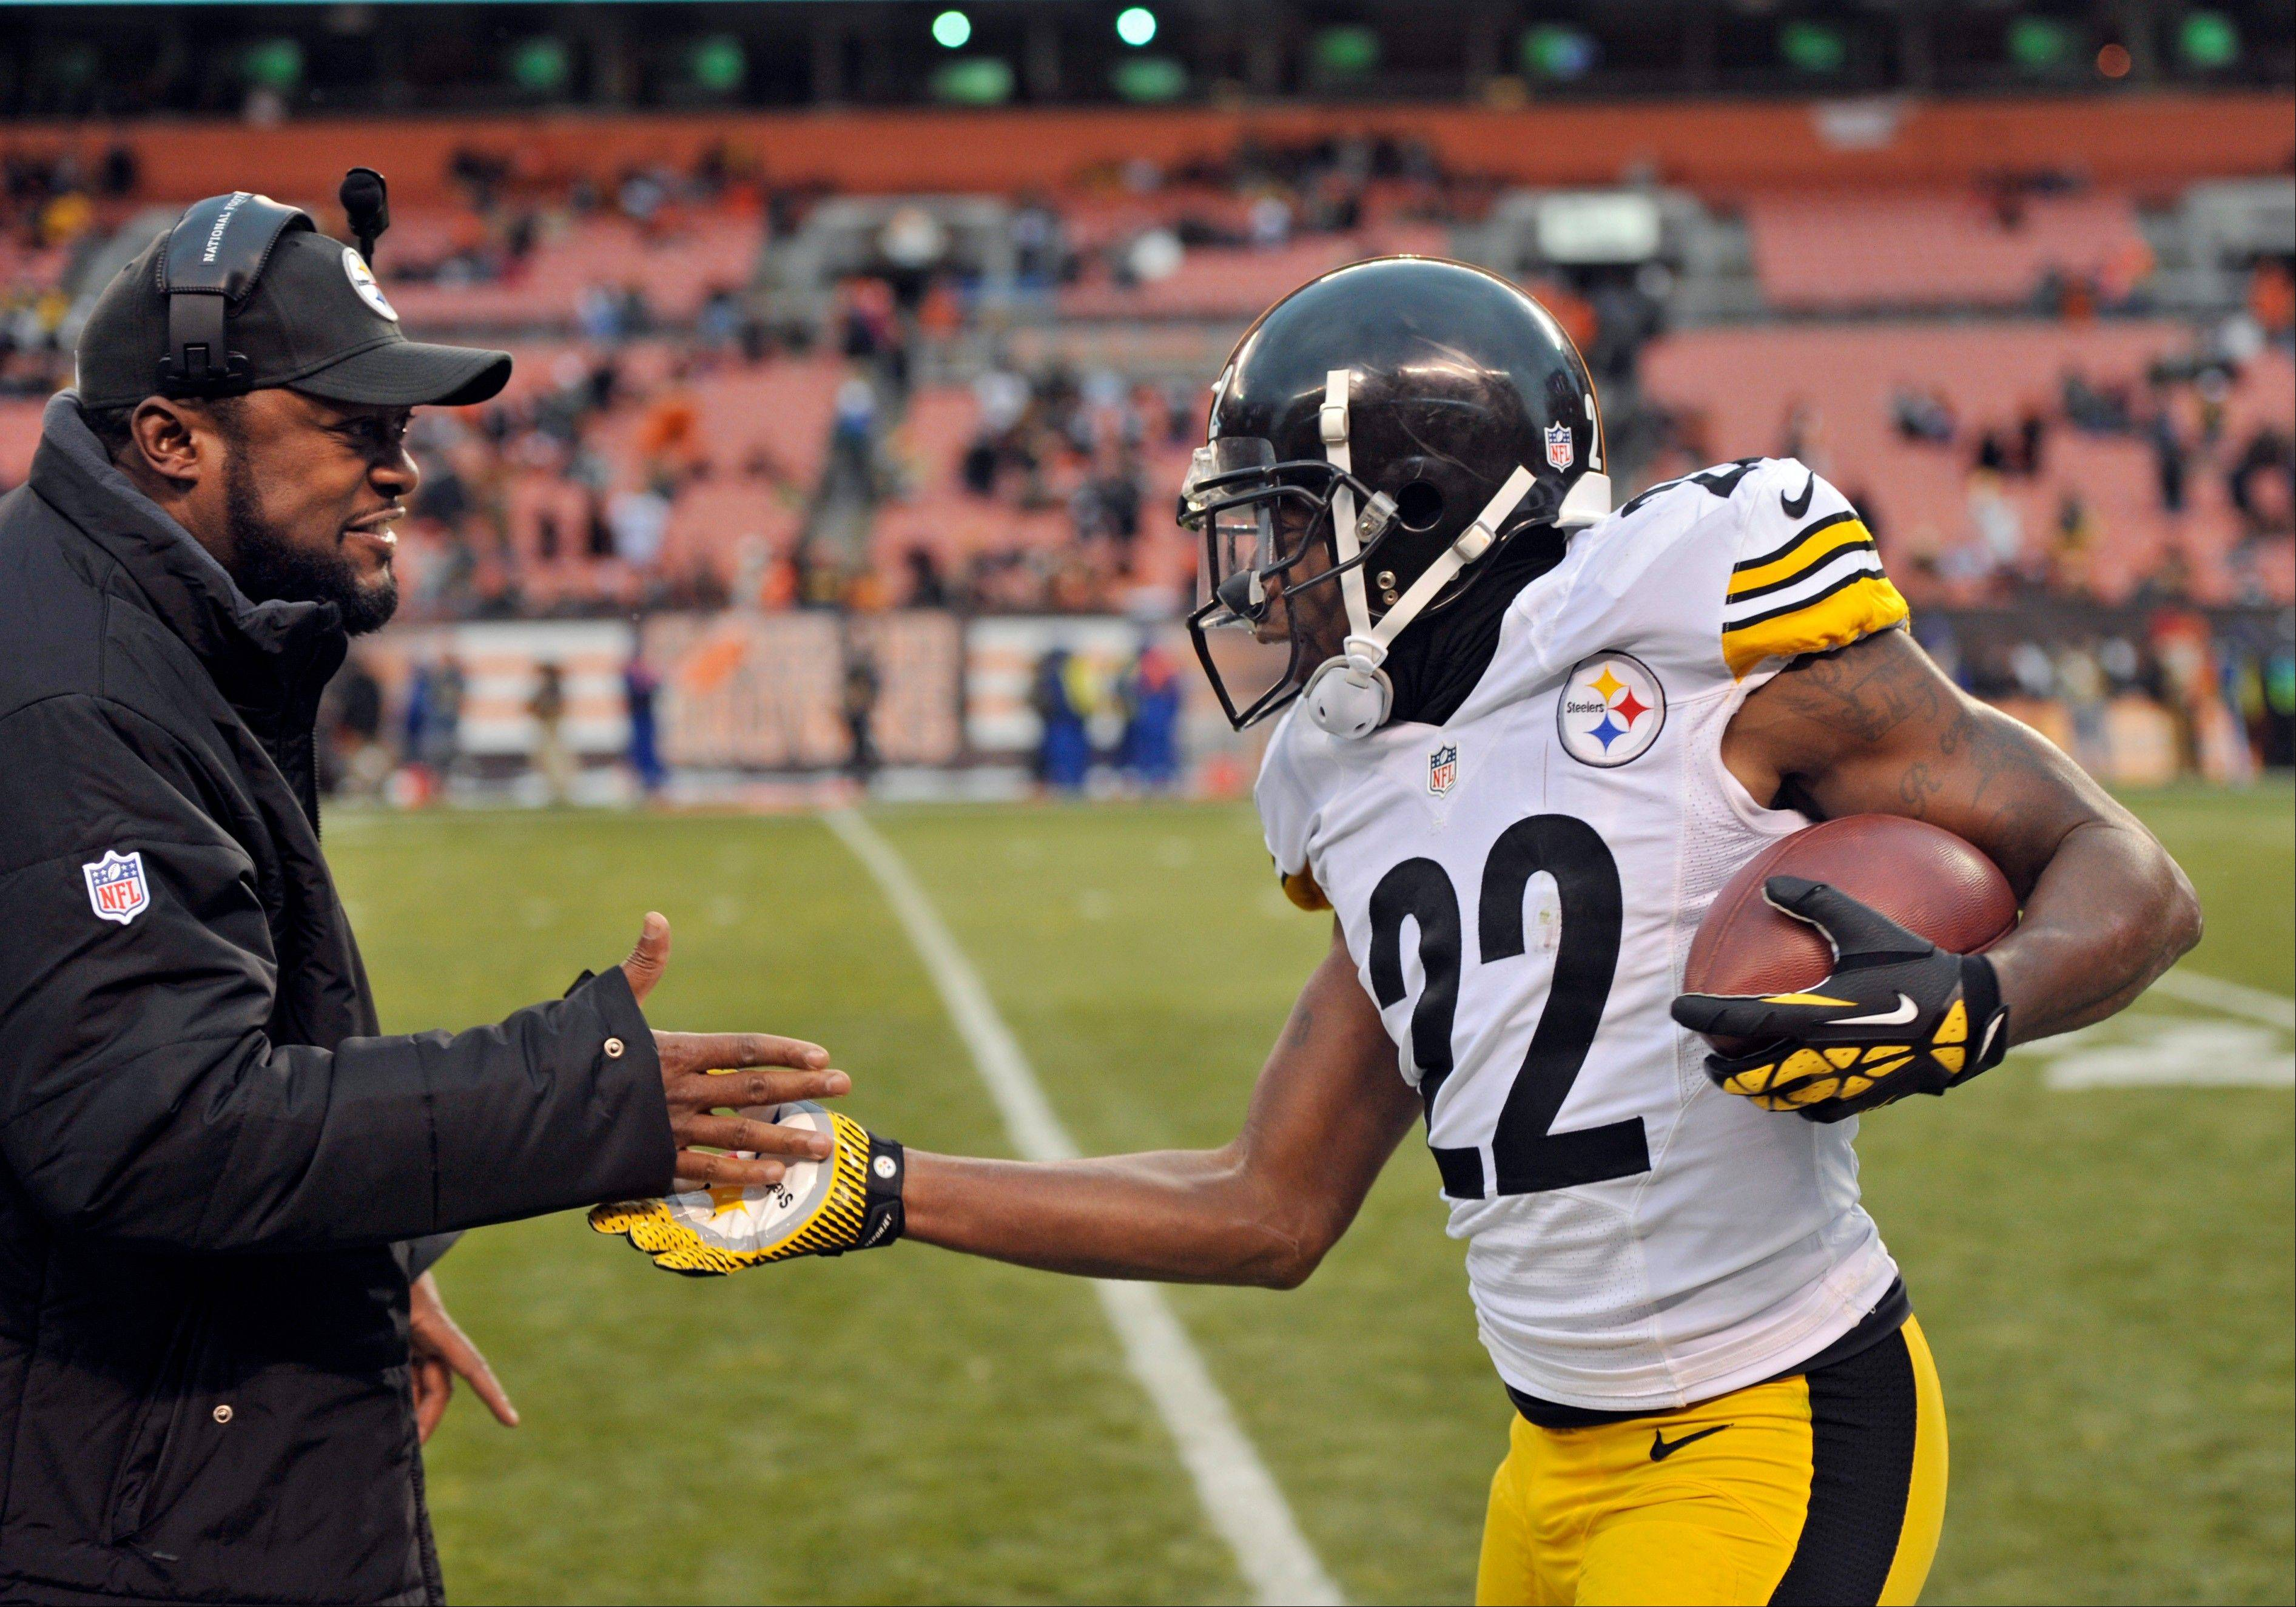 Pittsburgh Steelers cornerback William Gay (22) is congratulated by head coach Mike Tomlin after Gay returned an interception 21 yards for a touchdown against the Cleveland Browns in the fourth quarter of an NFL football game Sunday, Nov. 24, 2013.